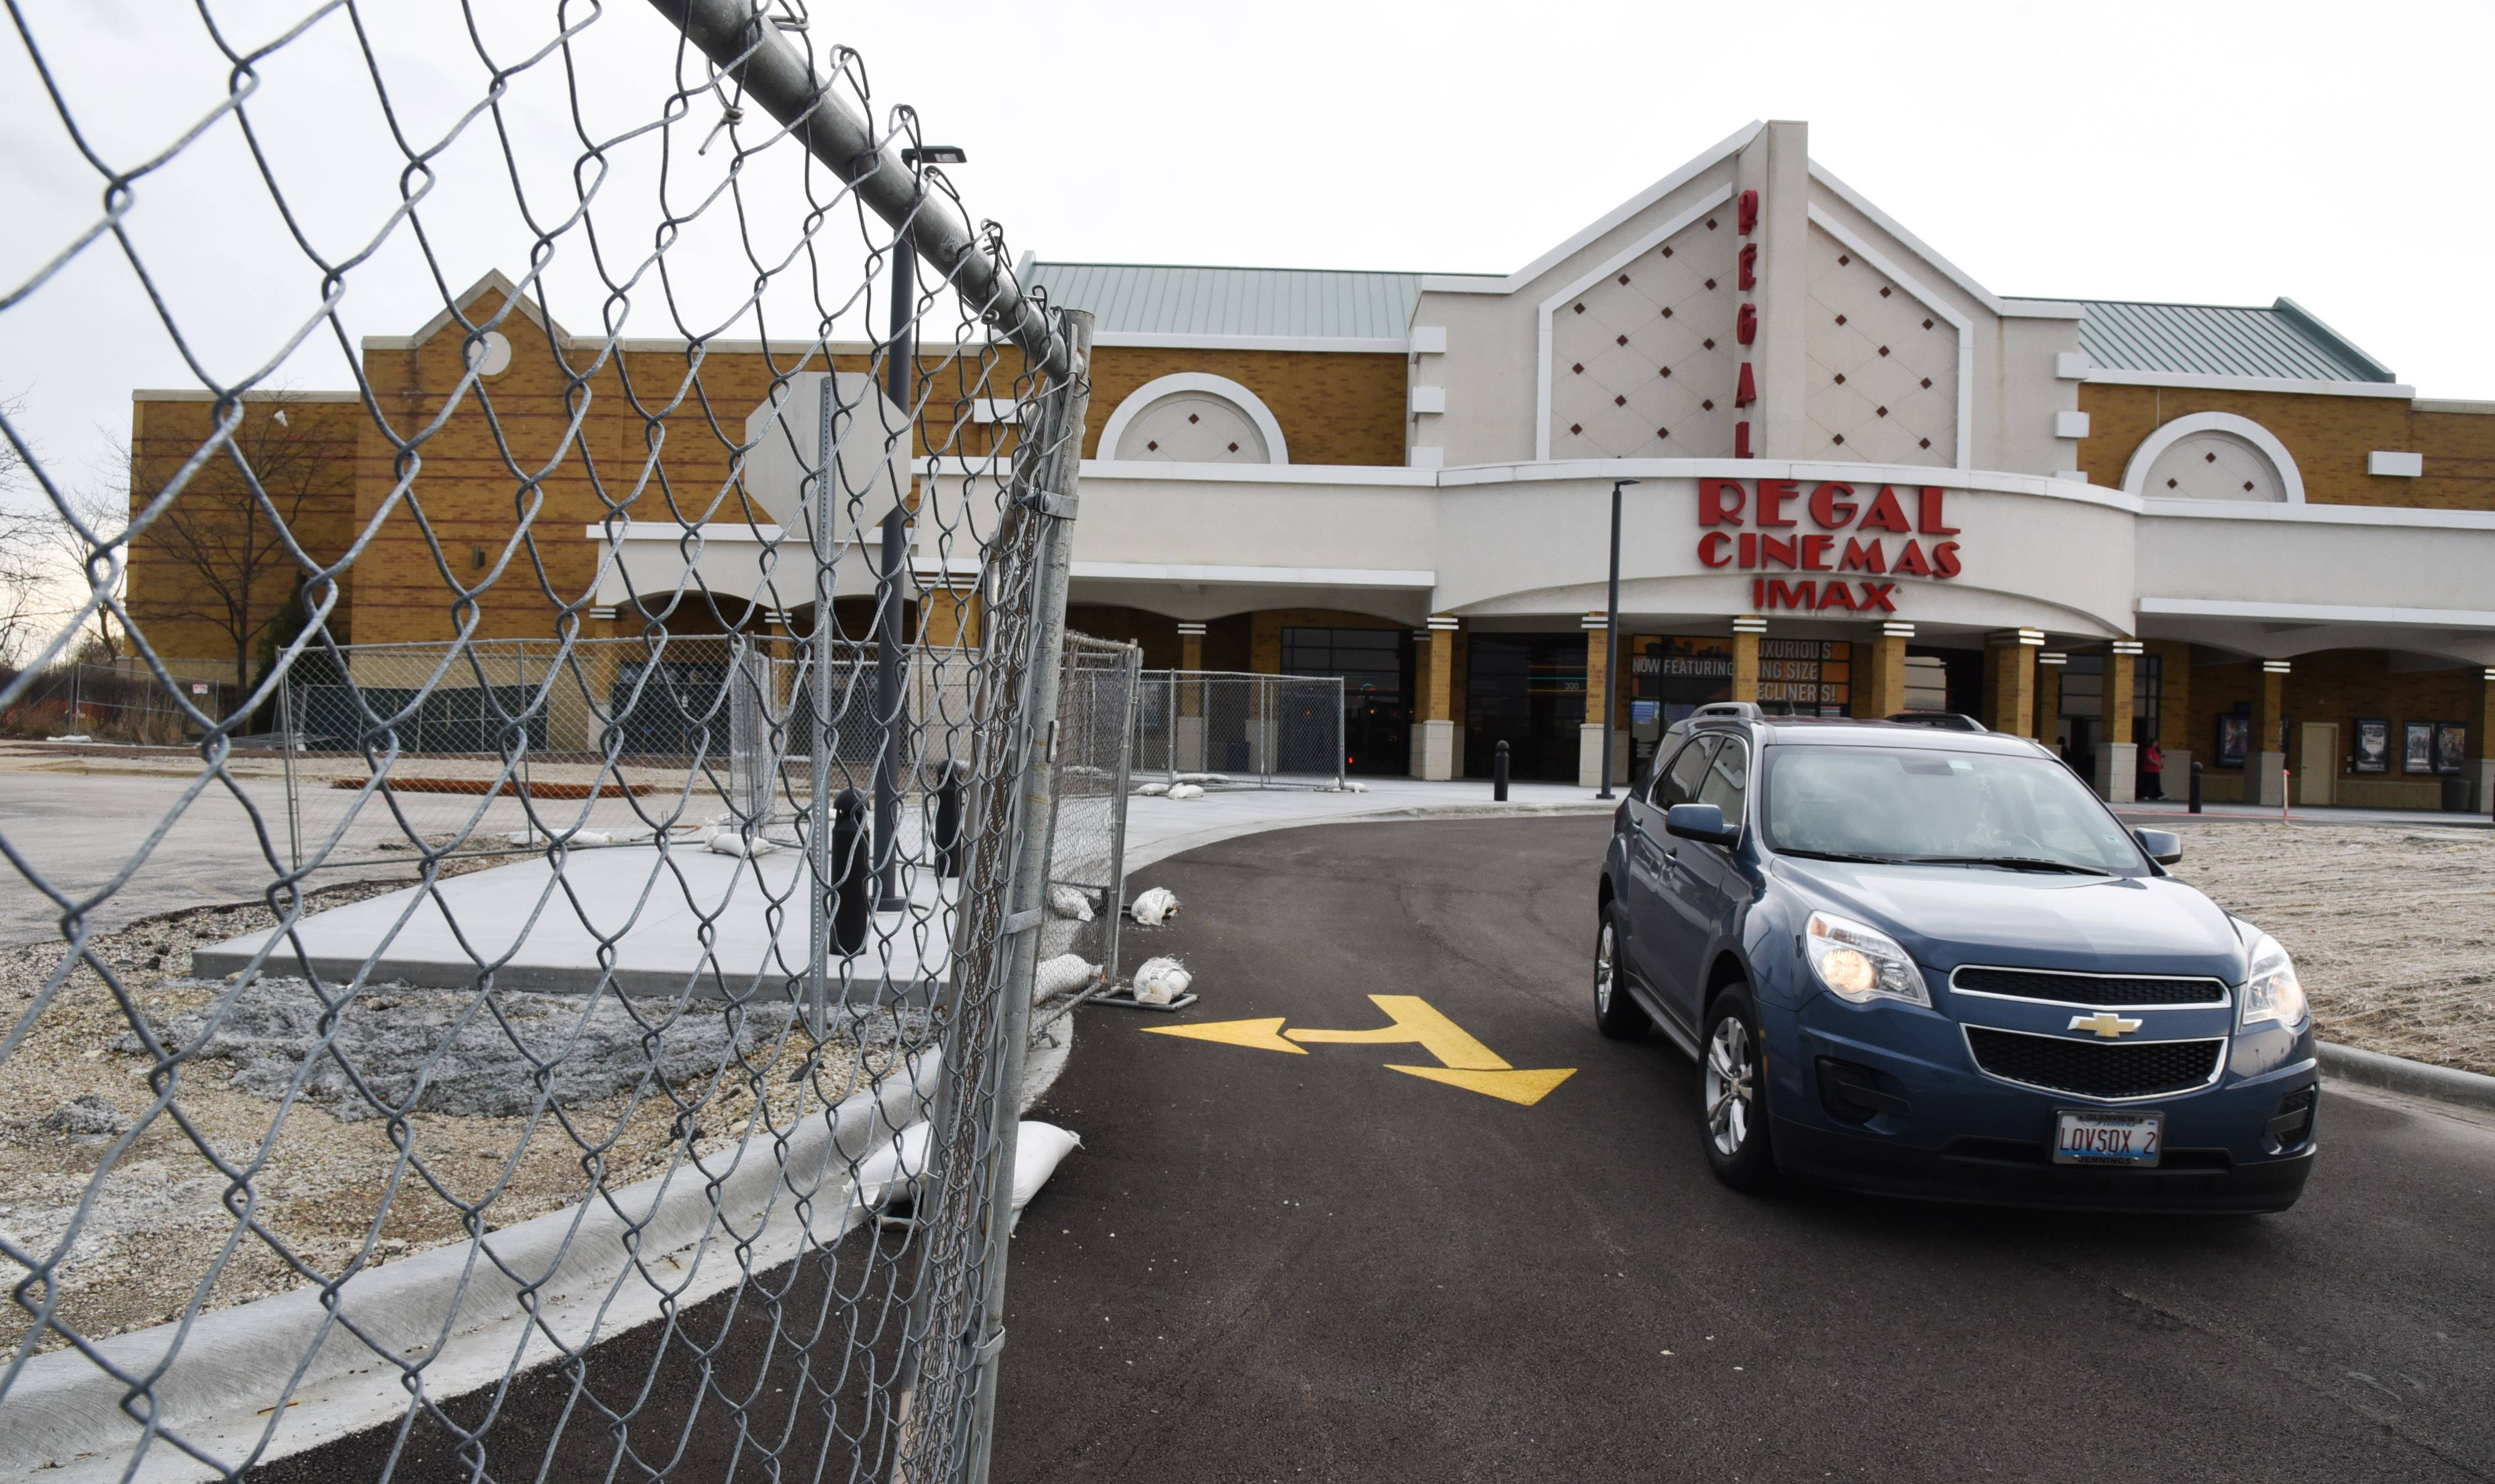 Some of the land near the Regal Cinemas movie house in Lincolnshire is fenced off for the construction of an apartment complex. Village officials are considering hiring a consultant to develop a plan for the businesses and homes along the town's Milwaukee Avenue corridor.